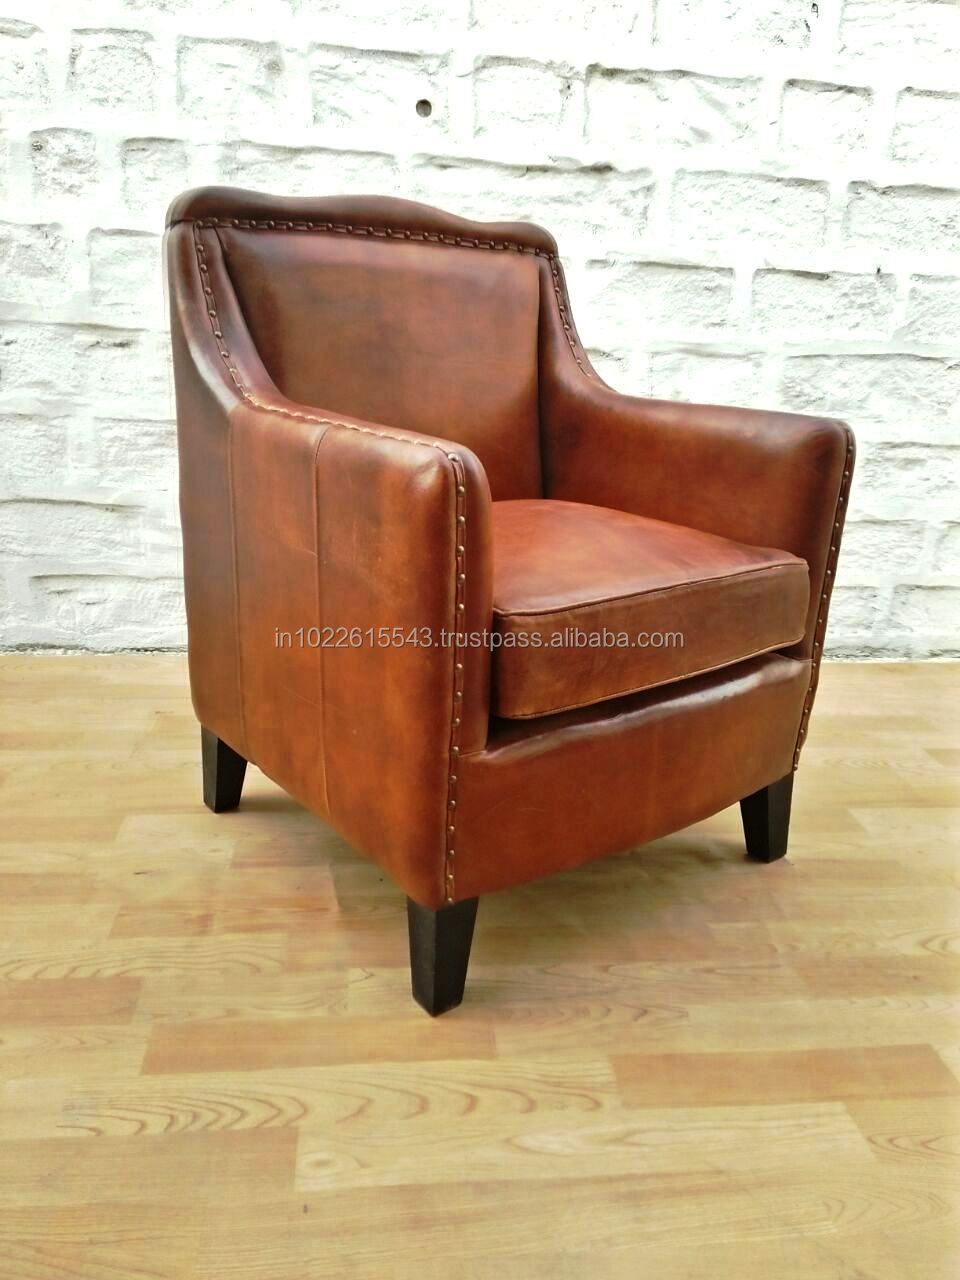 Club Leather Armchair Vintage Single Seater Sofa Chair